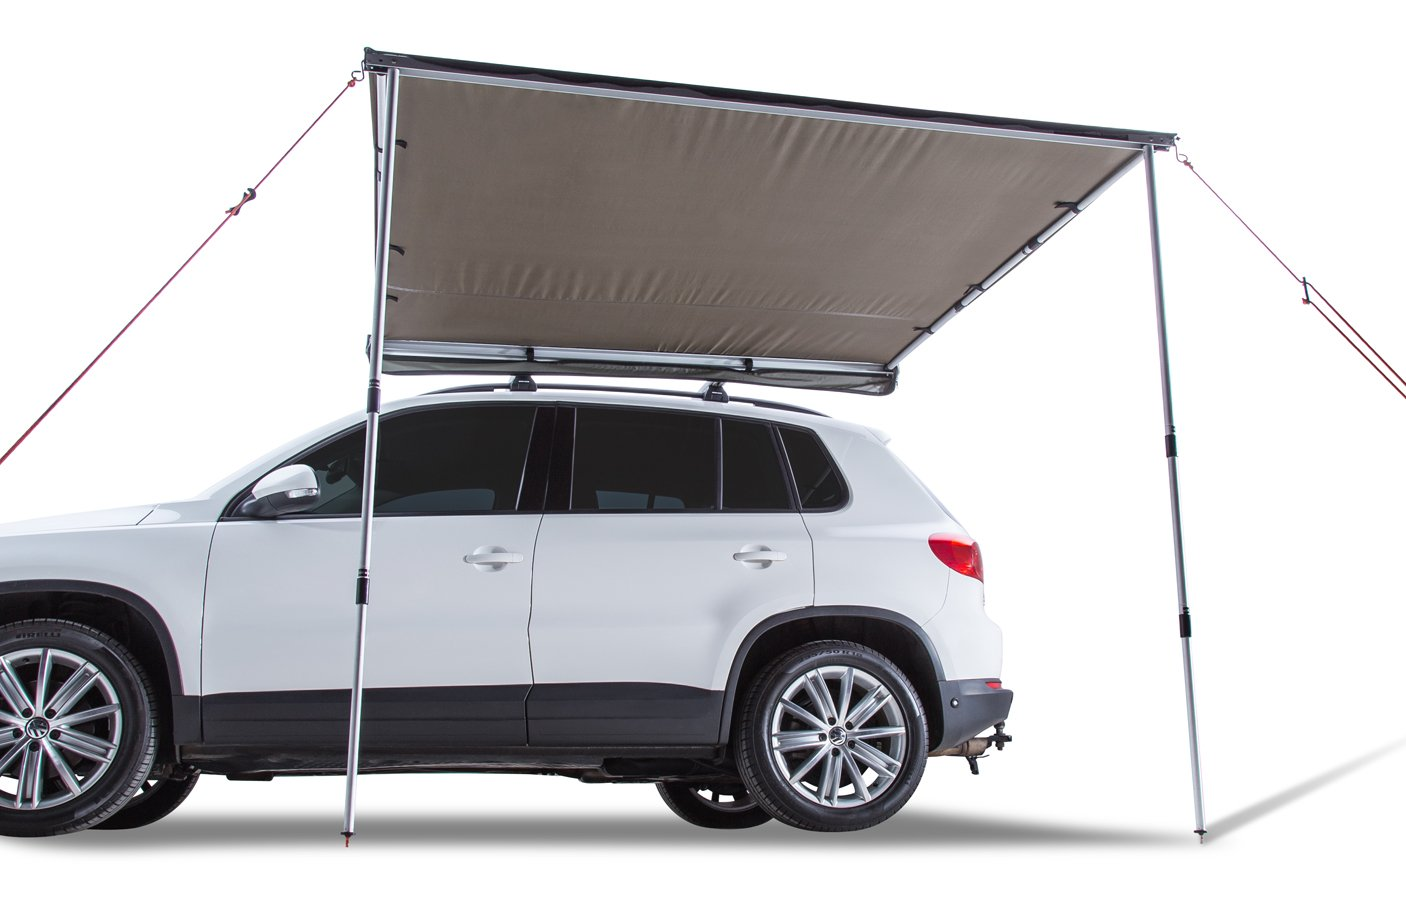 Rhino Rack Sunseeker Canopies And Awnings Outdoor Awning